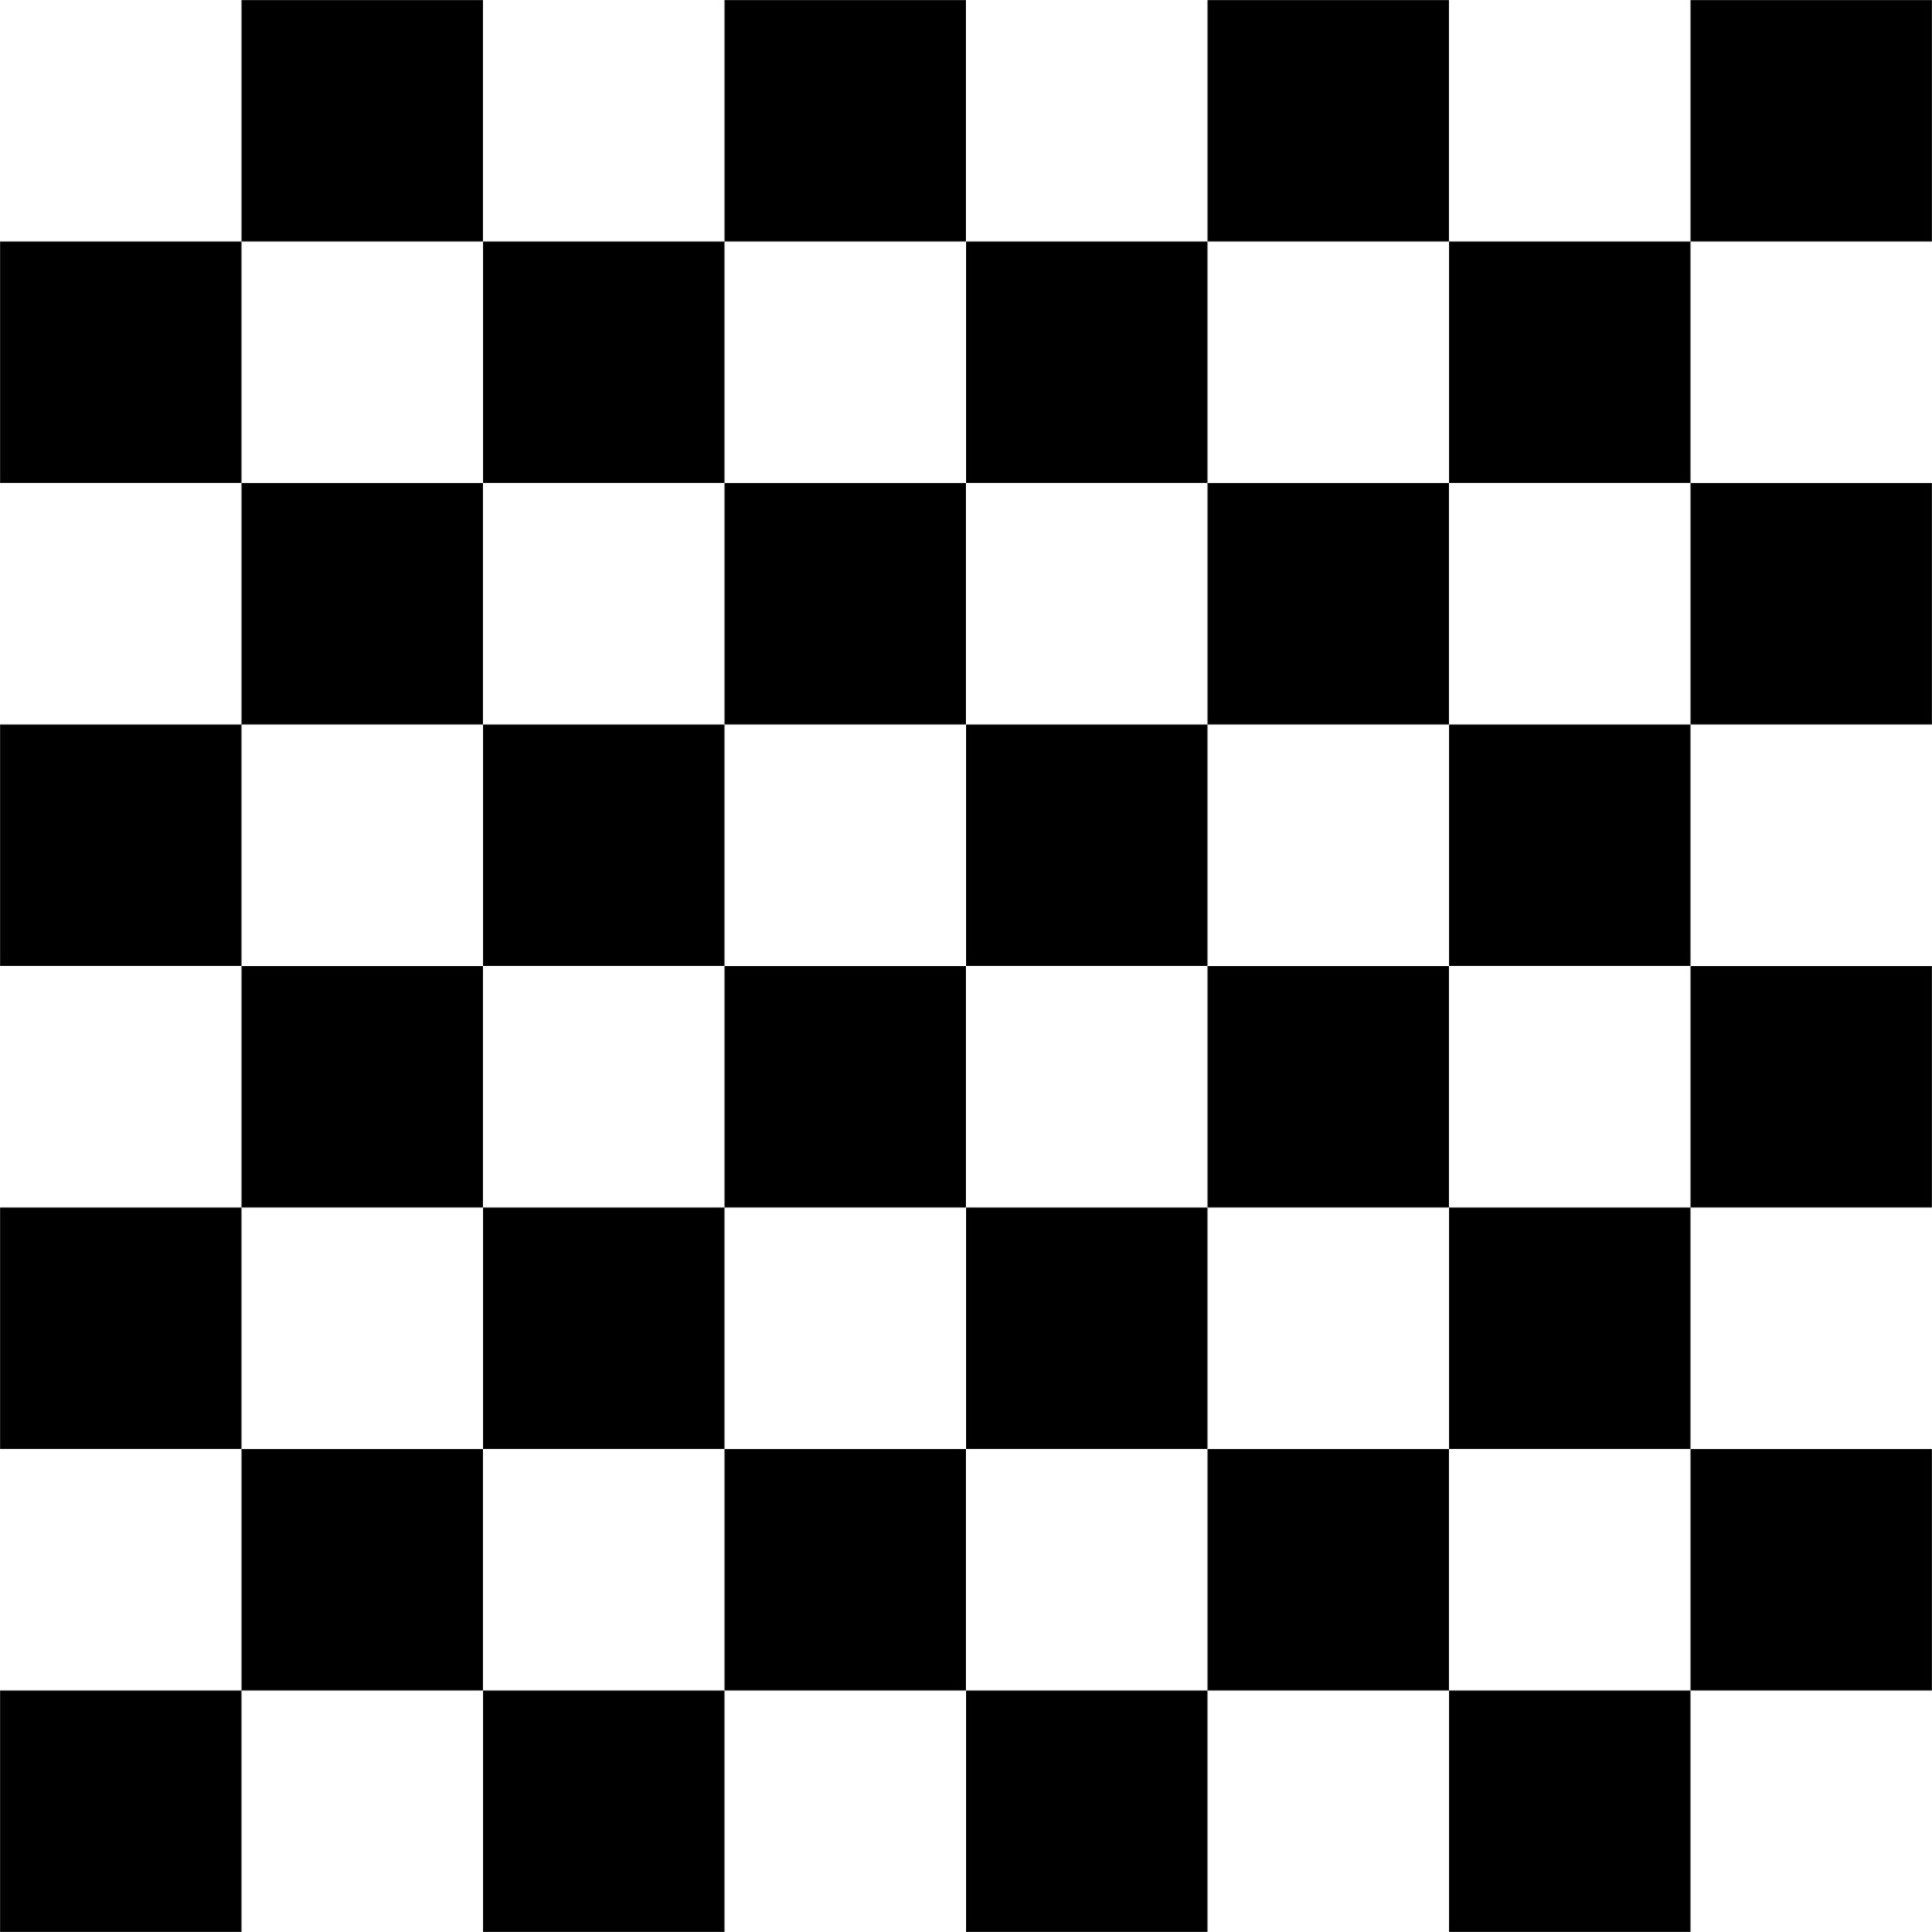 Checker board vans clipart clipart library stock Free Checkerboard Pictures, Download Free Clip Art, Free Clip Art on ... clipart library stock